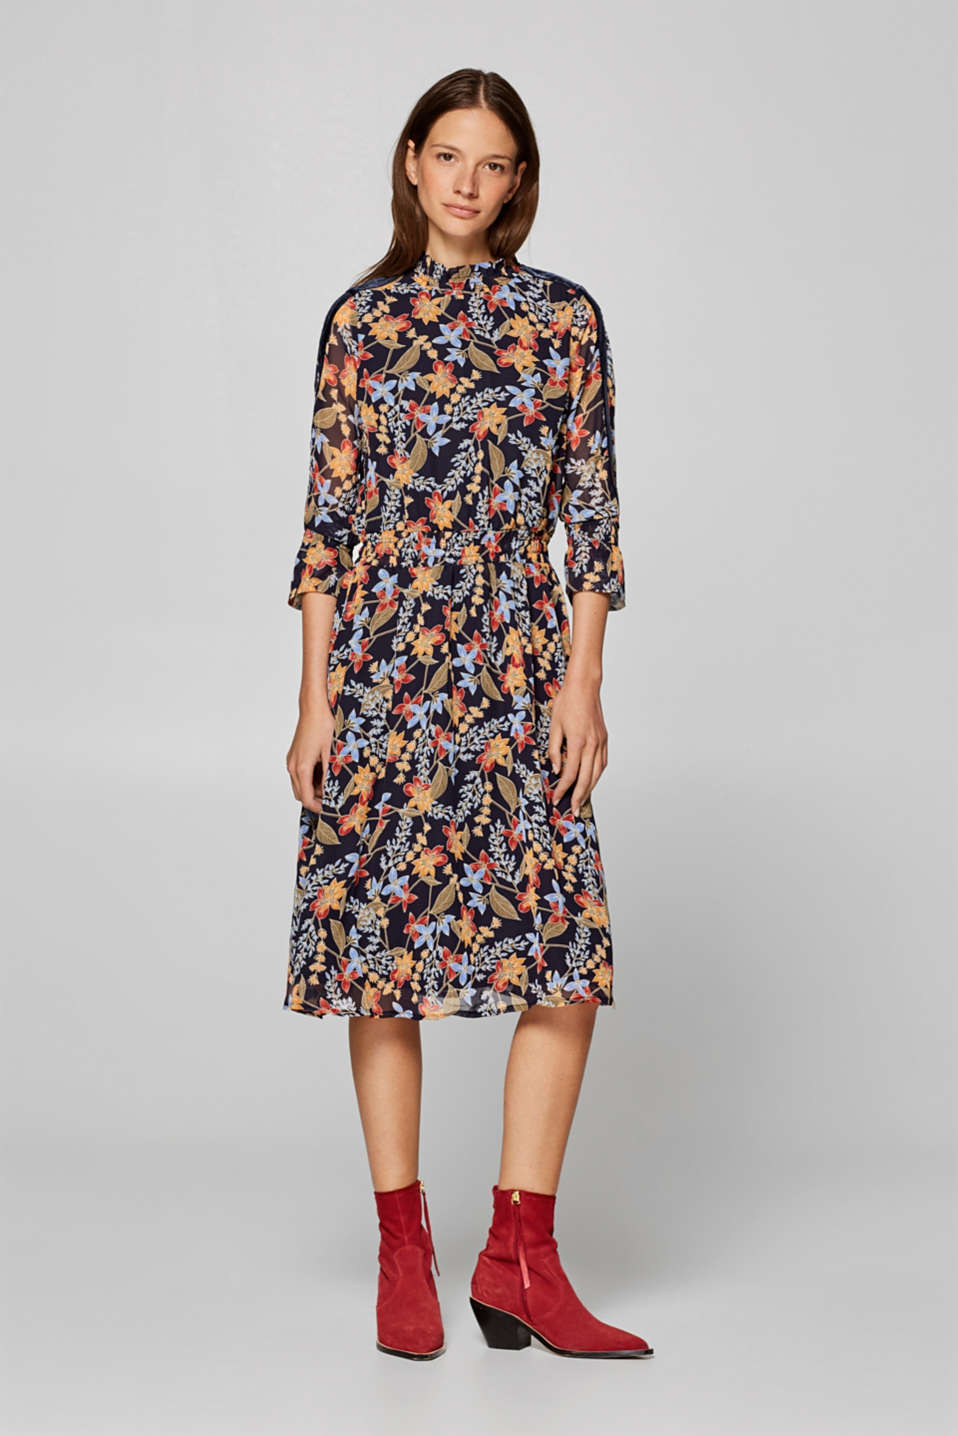 Esprit - Smocked chiffon dress with a floral print